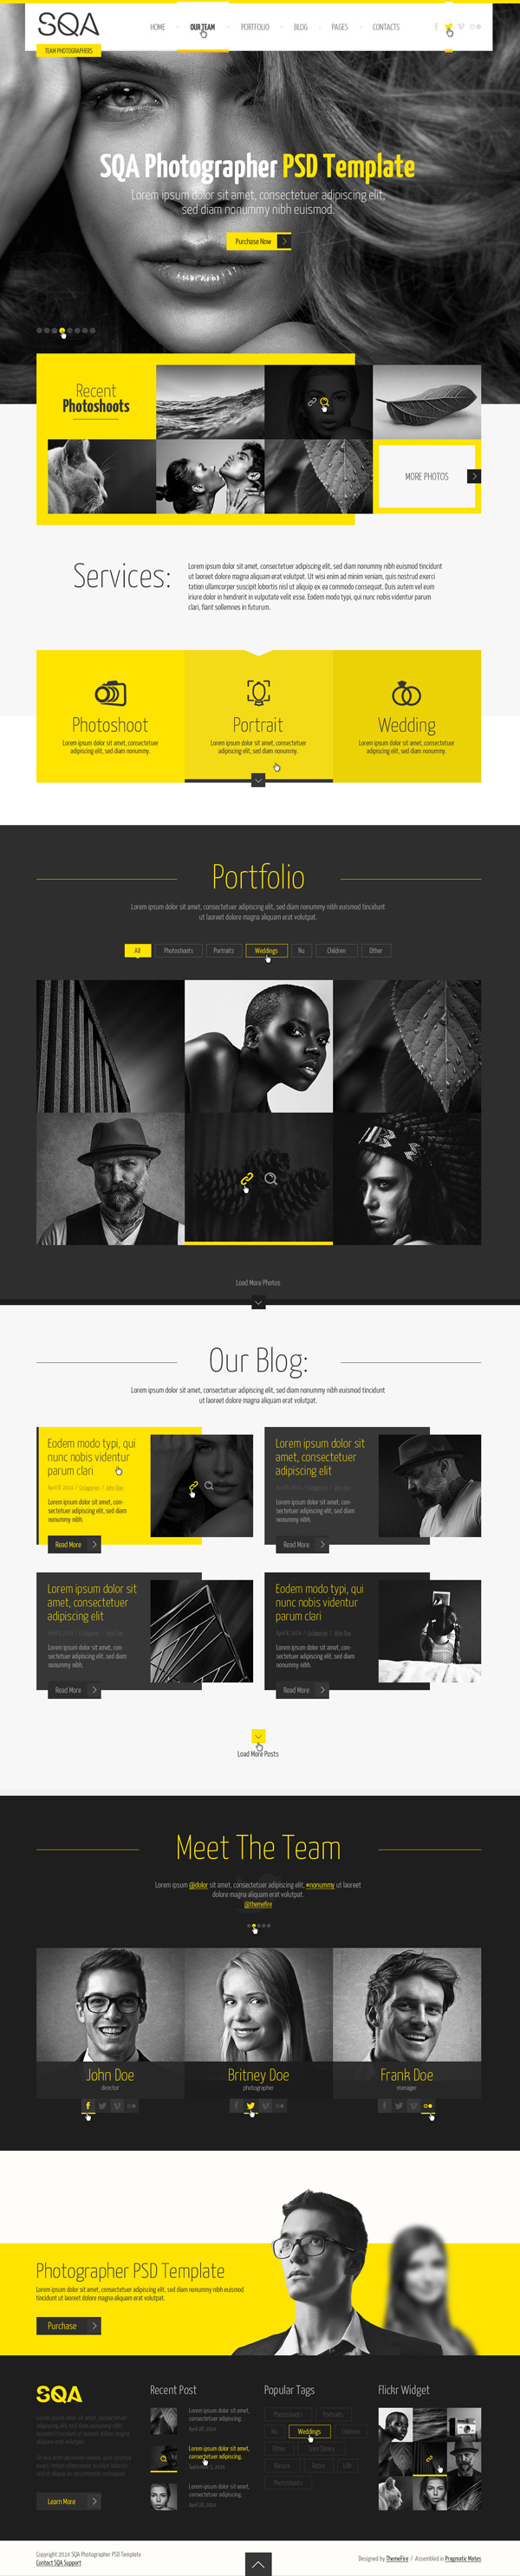 HTML5 One Page Website Templates with UI/UX Experience | Design ...